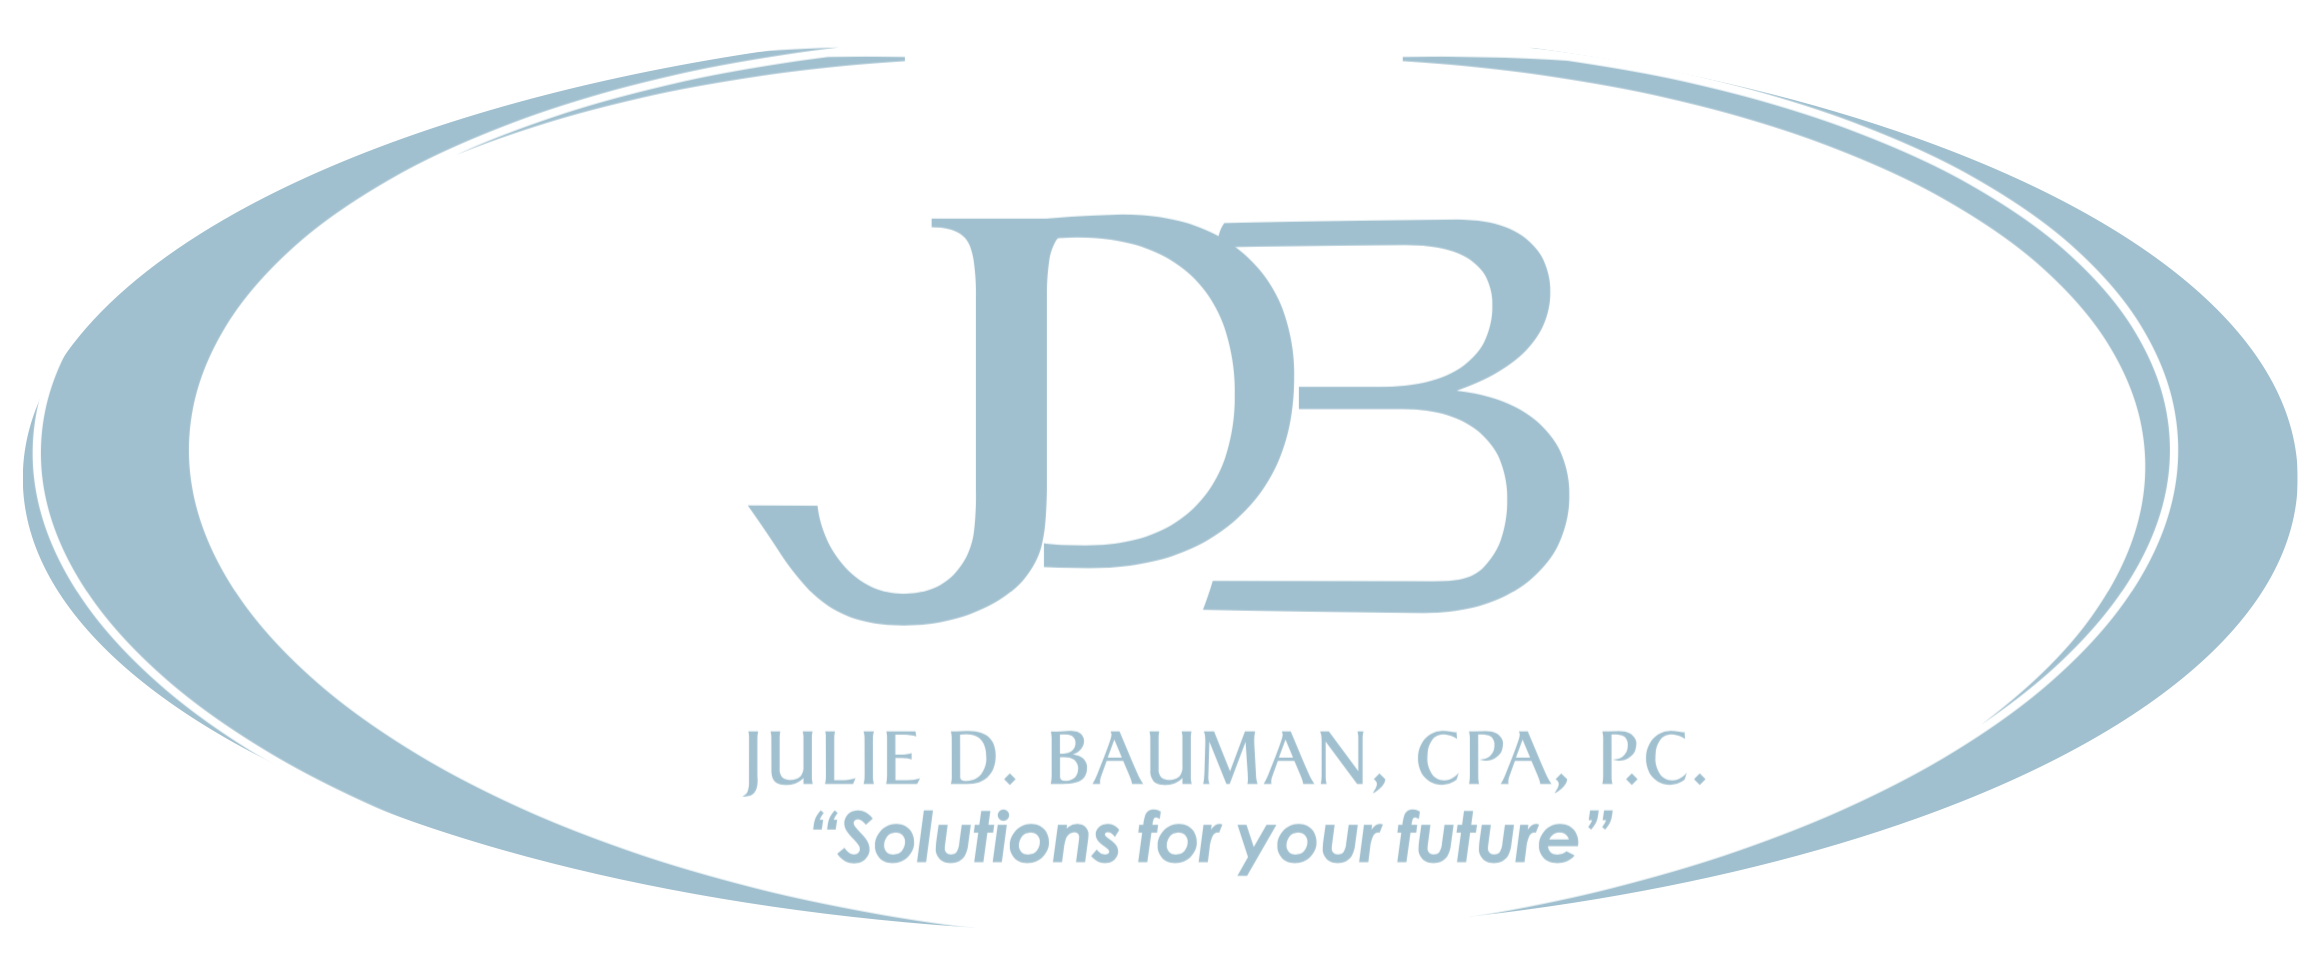 Virtual Accounting Firm | Payroll Team Member Page | Julie D. Bauman, CPA, PC